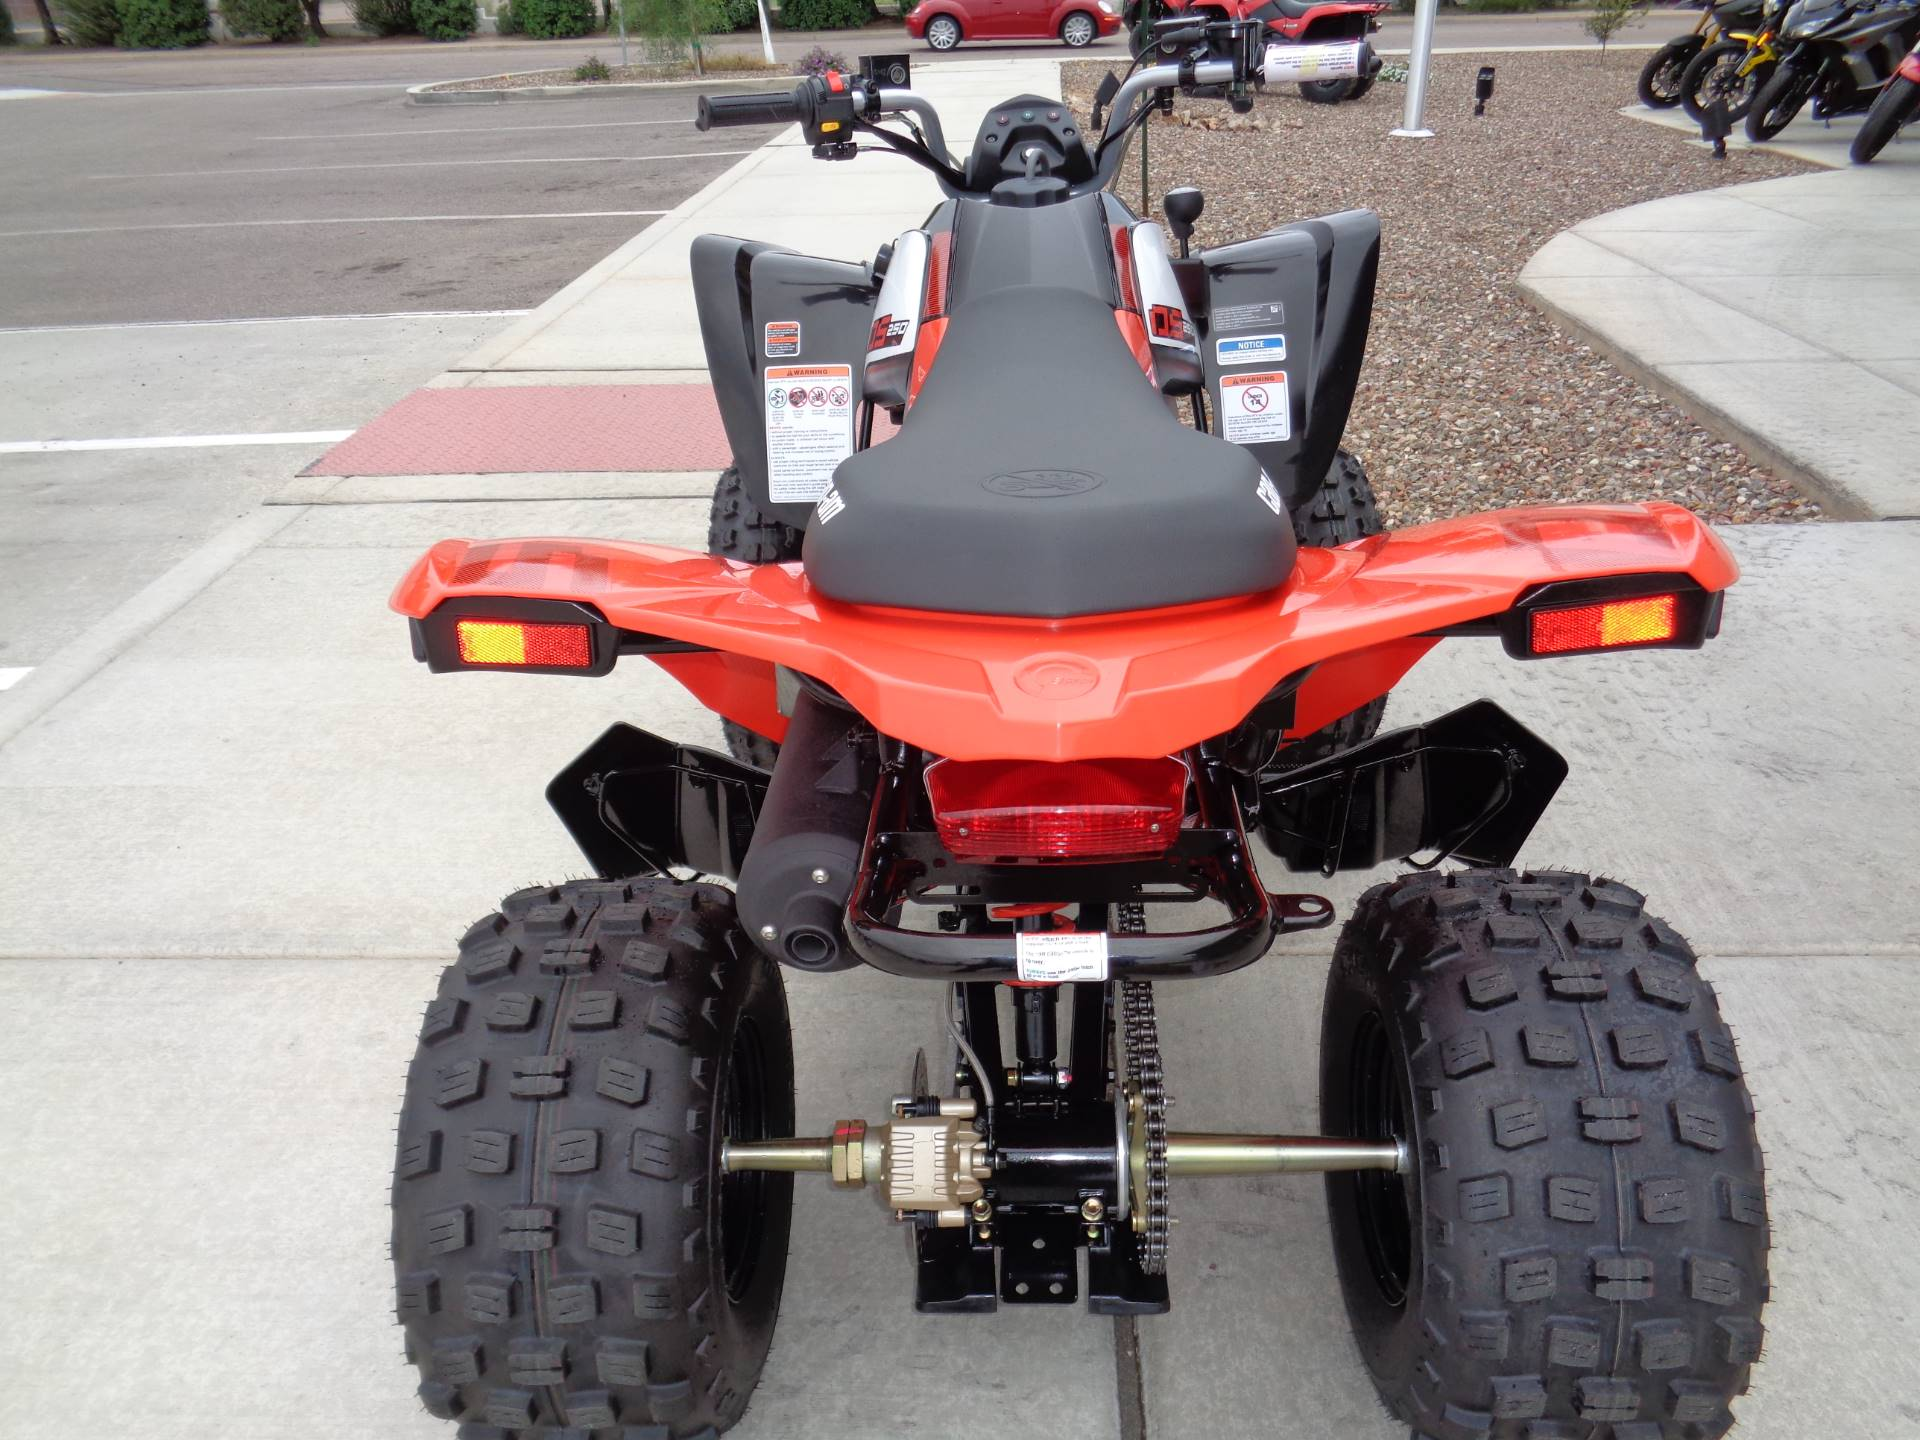 2020 Can-Am DS 250 in Sierra Vista, Arizona - Photo 7